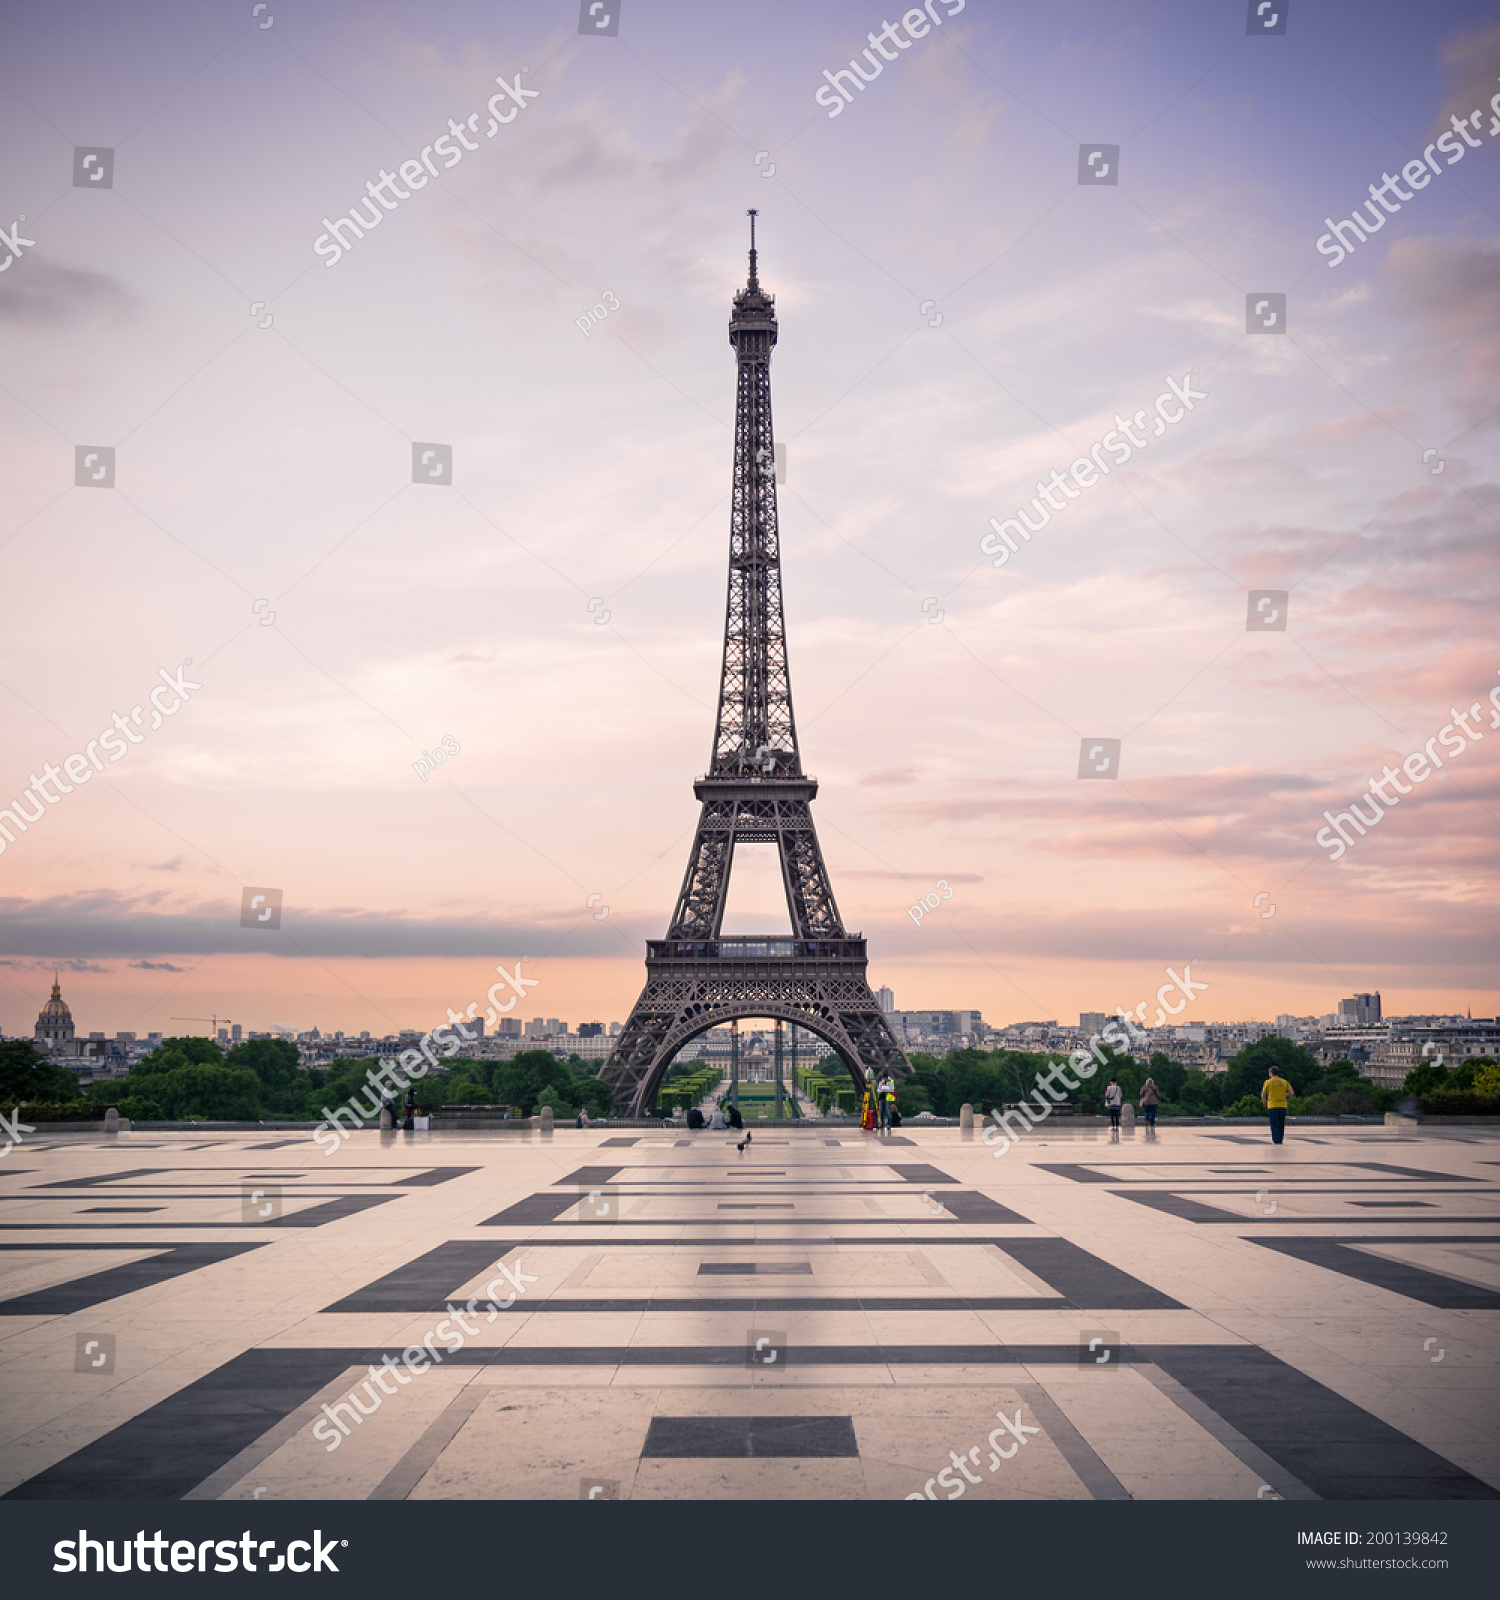 essay sample eiffel tower essay Descriptive paper about the eiffel tower  the eiffel tower essay  #45054 26 september 2014 the cultural icon of the eiffel tower the eiffel tower is.